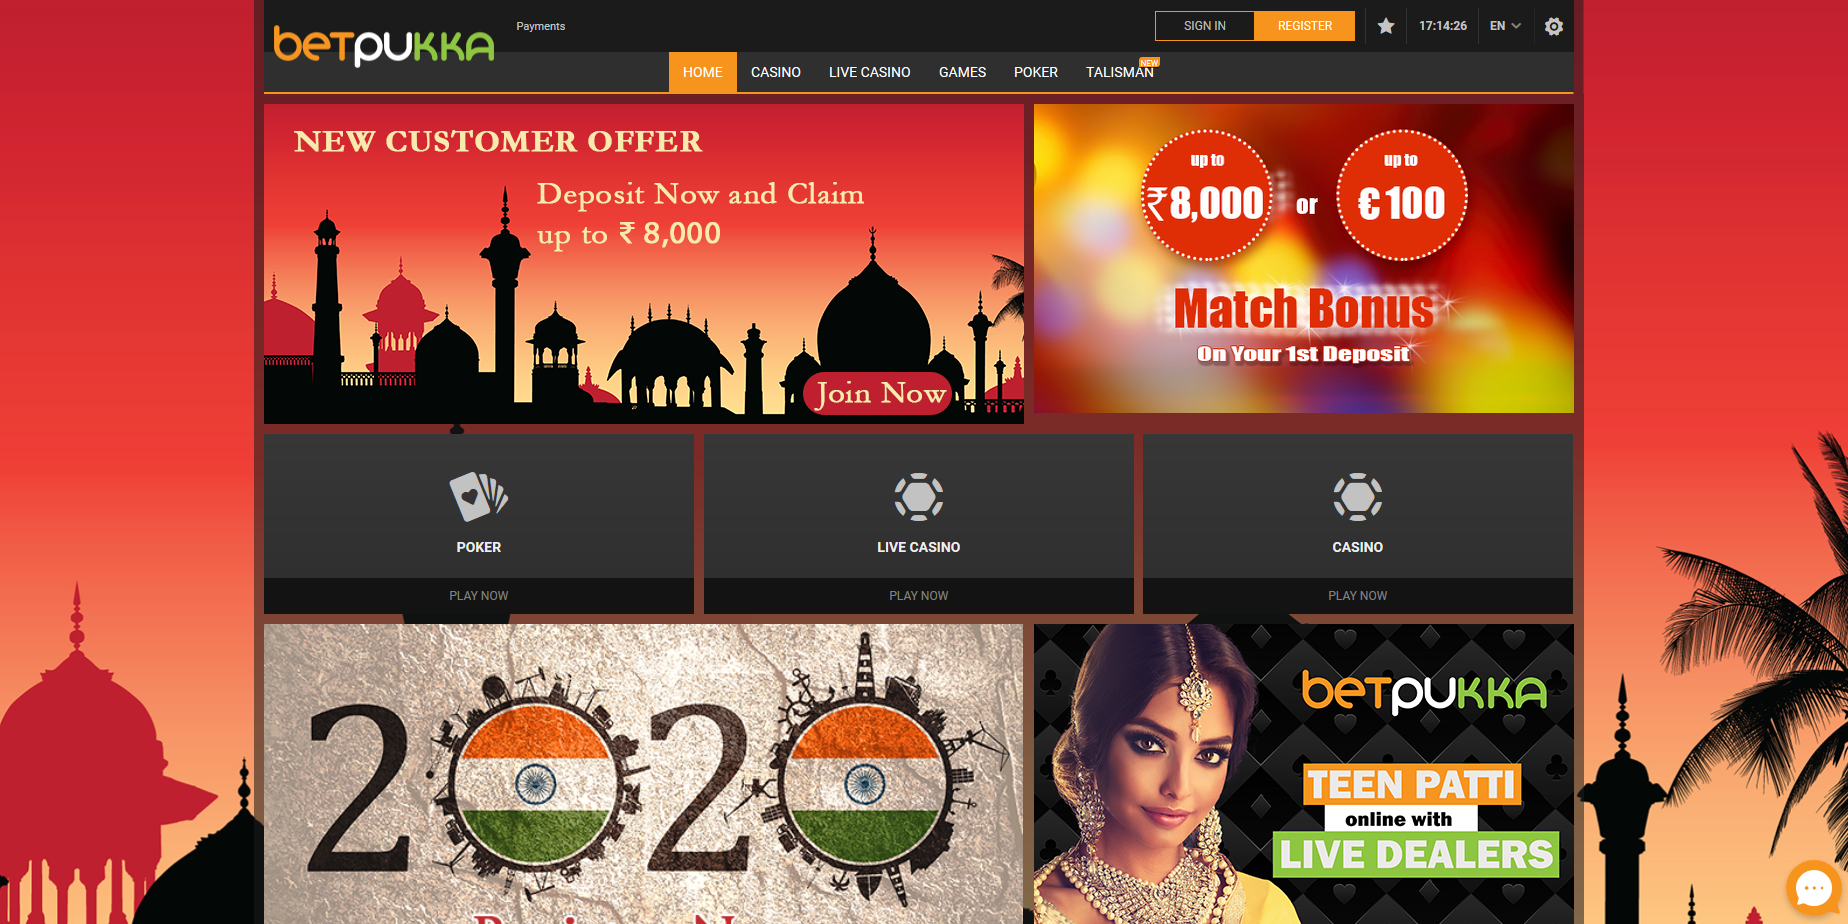 the image shows the home page of Betpukka.com casino